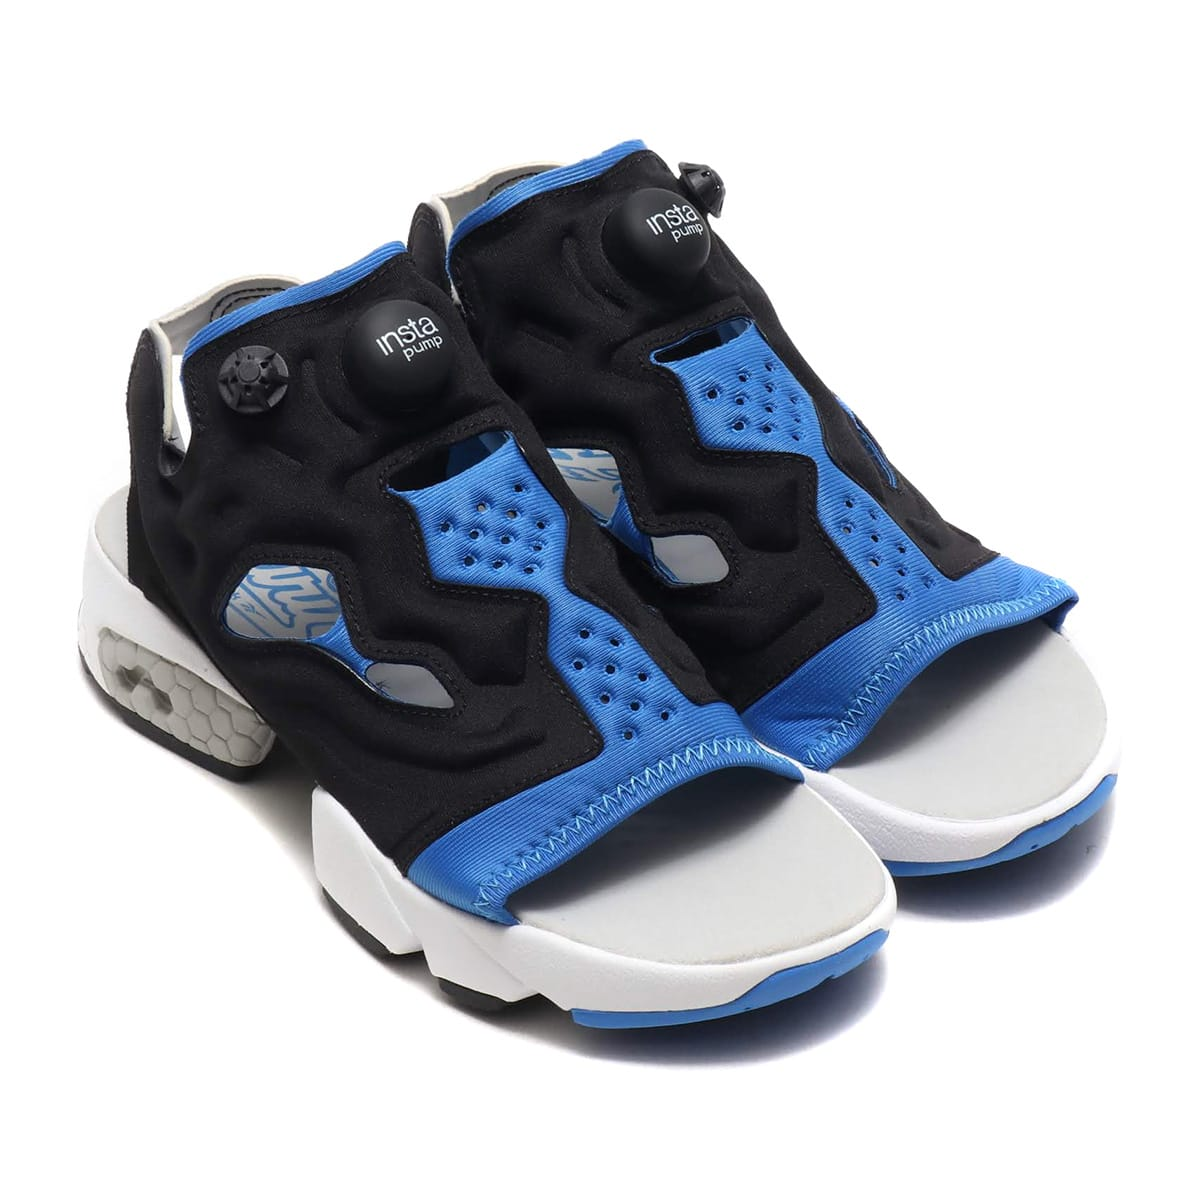 Reebok INSTAPUMP FURY SANDAL BLACK/ECHBLU/STEEL 19SS-I_photo_large